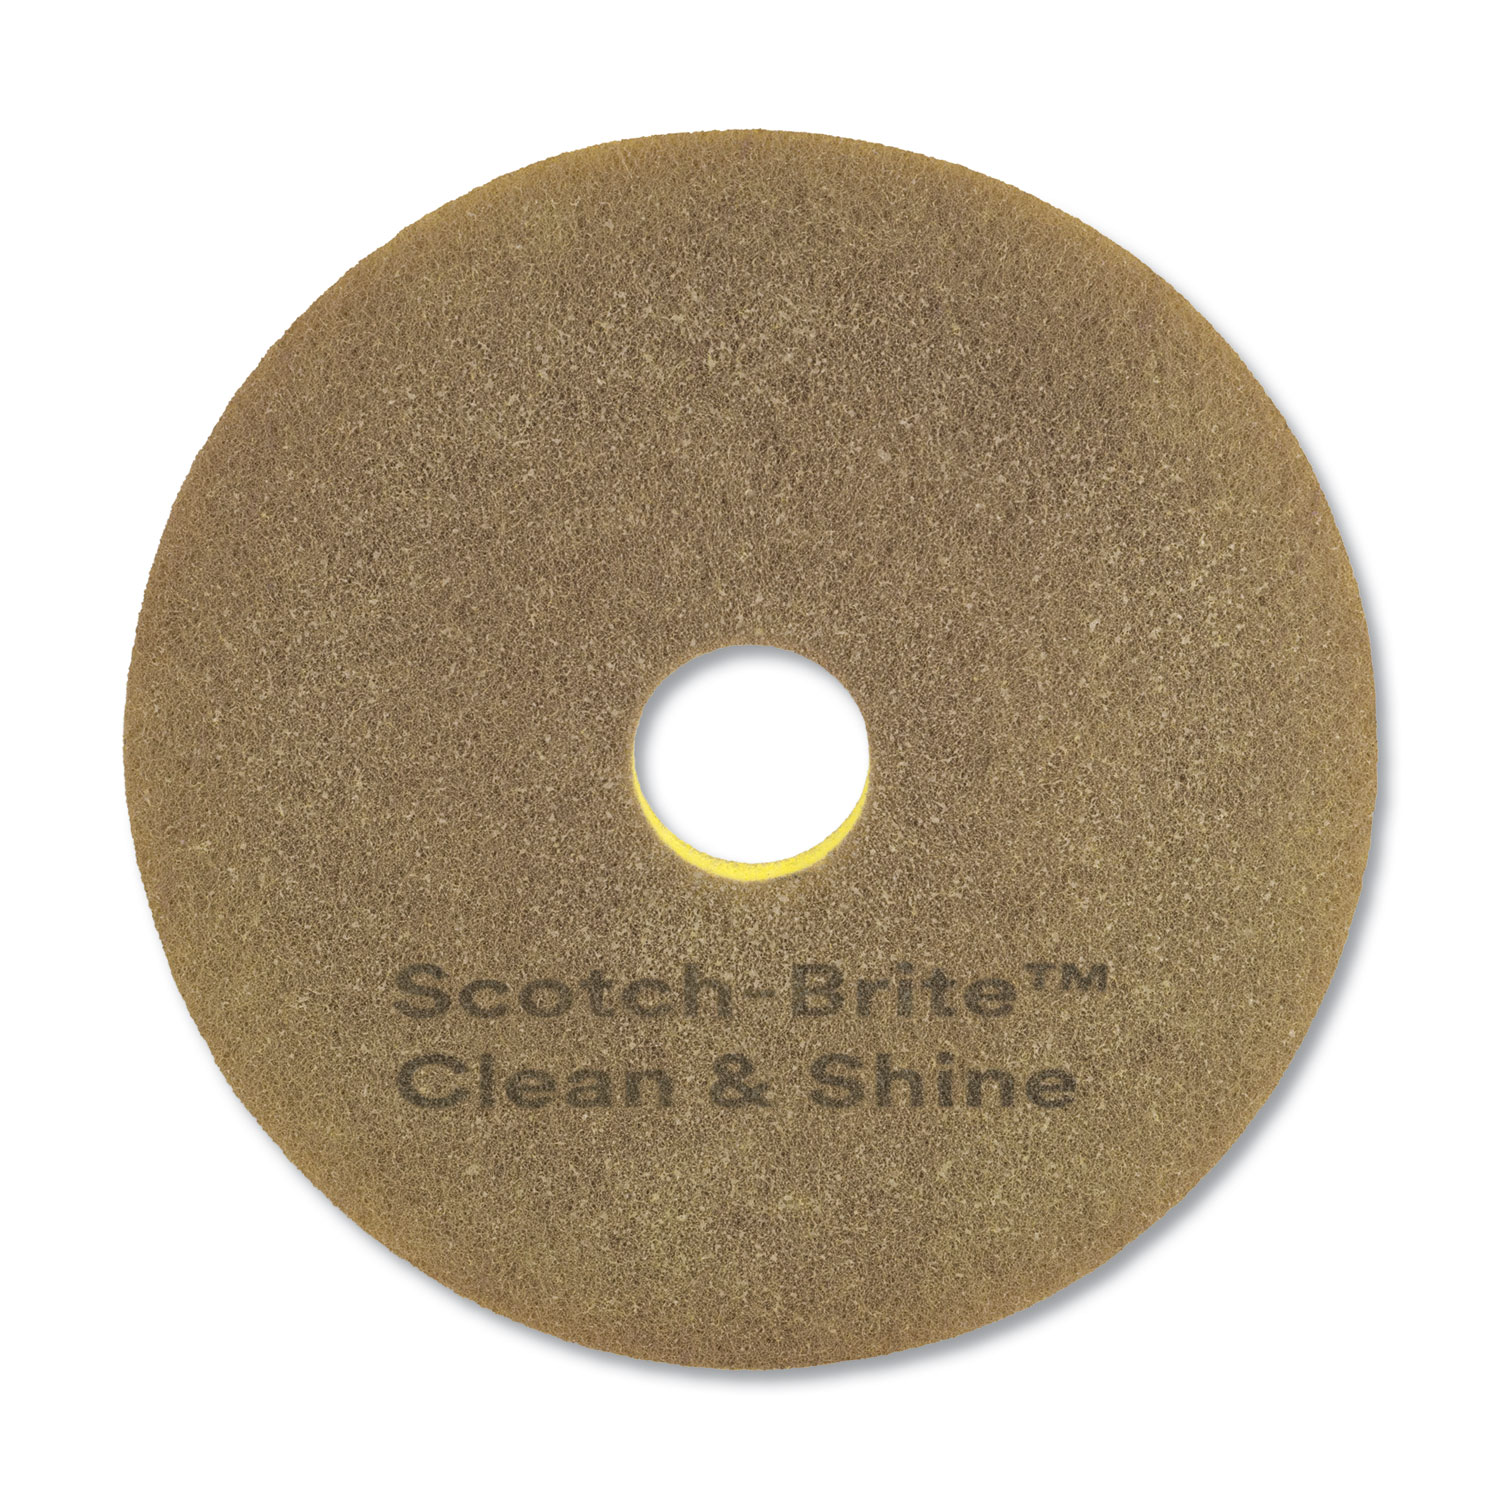 "Scotch-Brite Clean And Shine Pad, 17"" Diameter, Yellow"